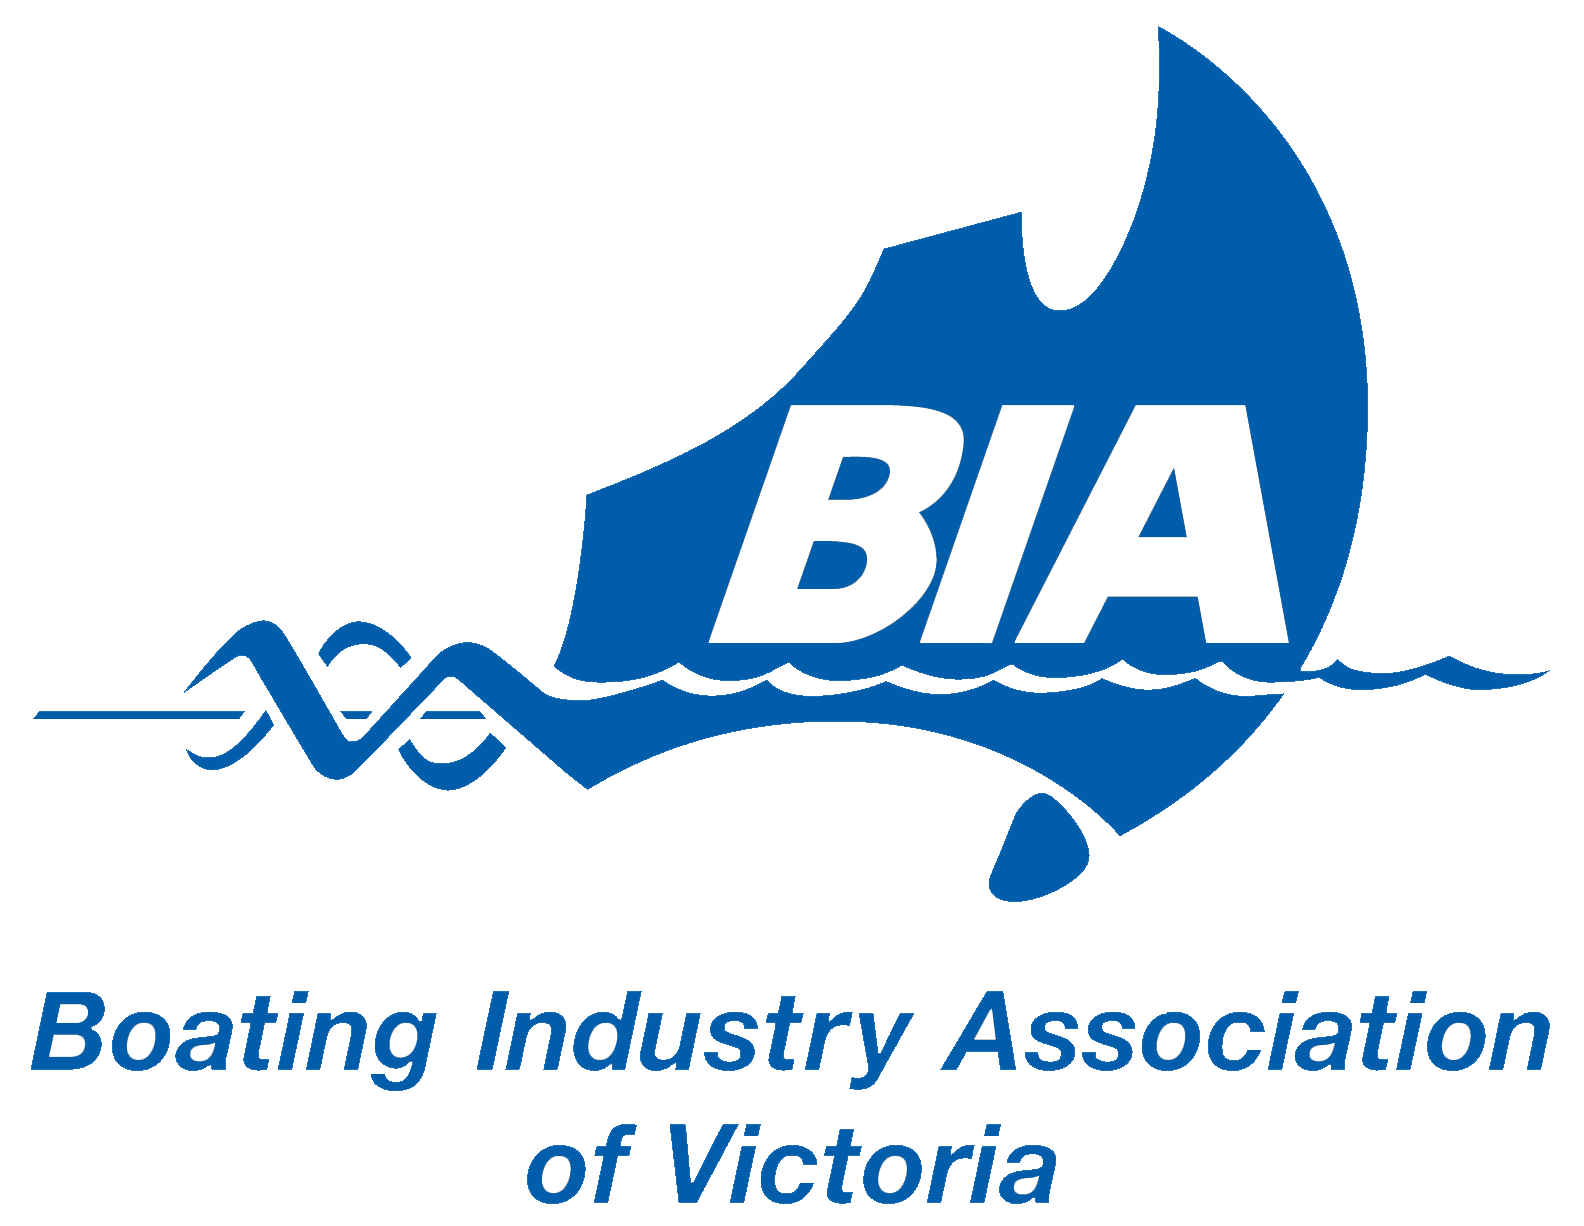 BIA-logo-transparent.png